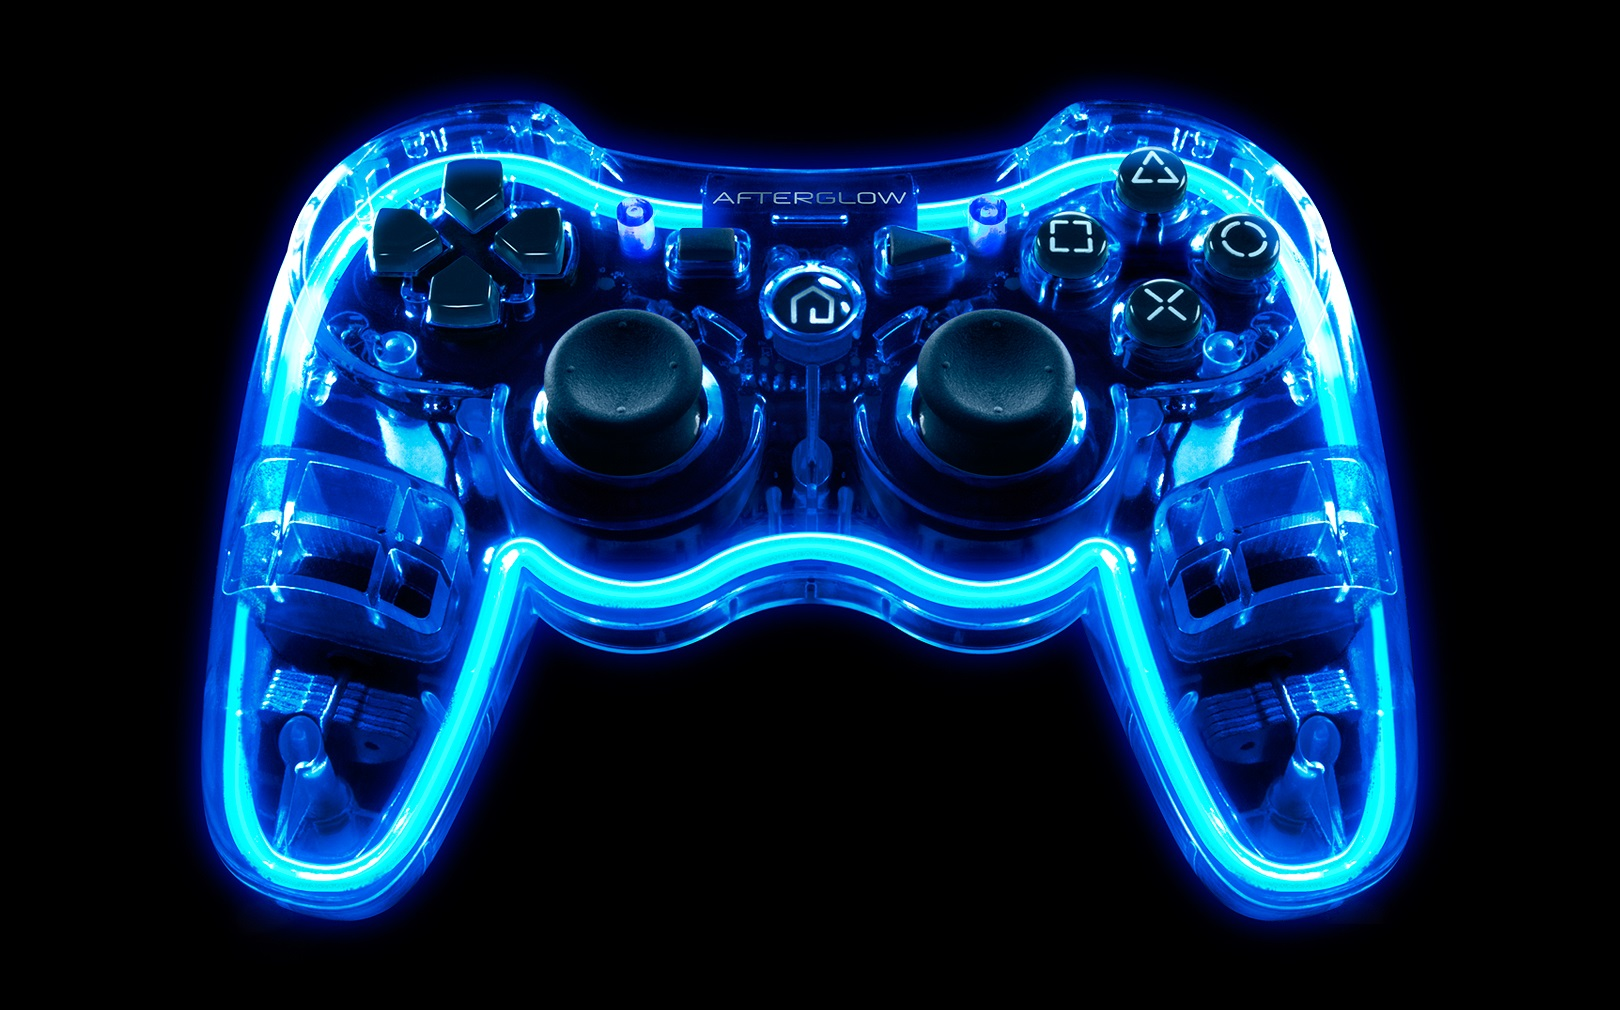 Afterglow Ps3 Controller On Pc Skyrim